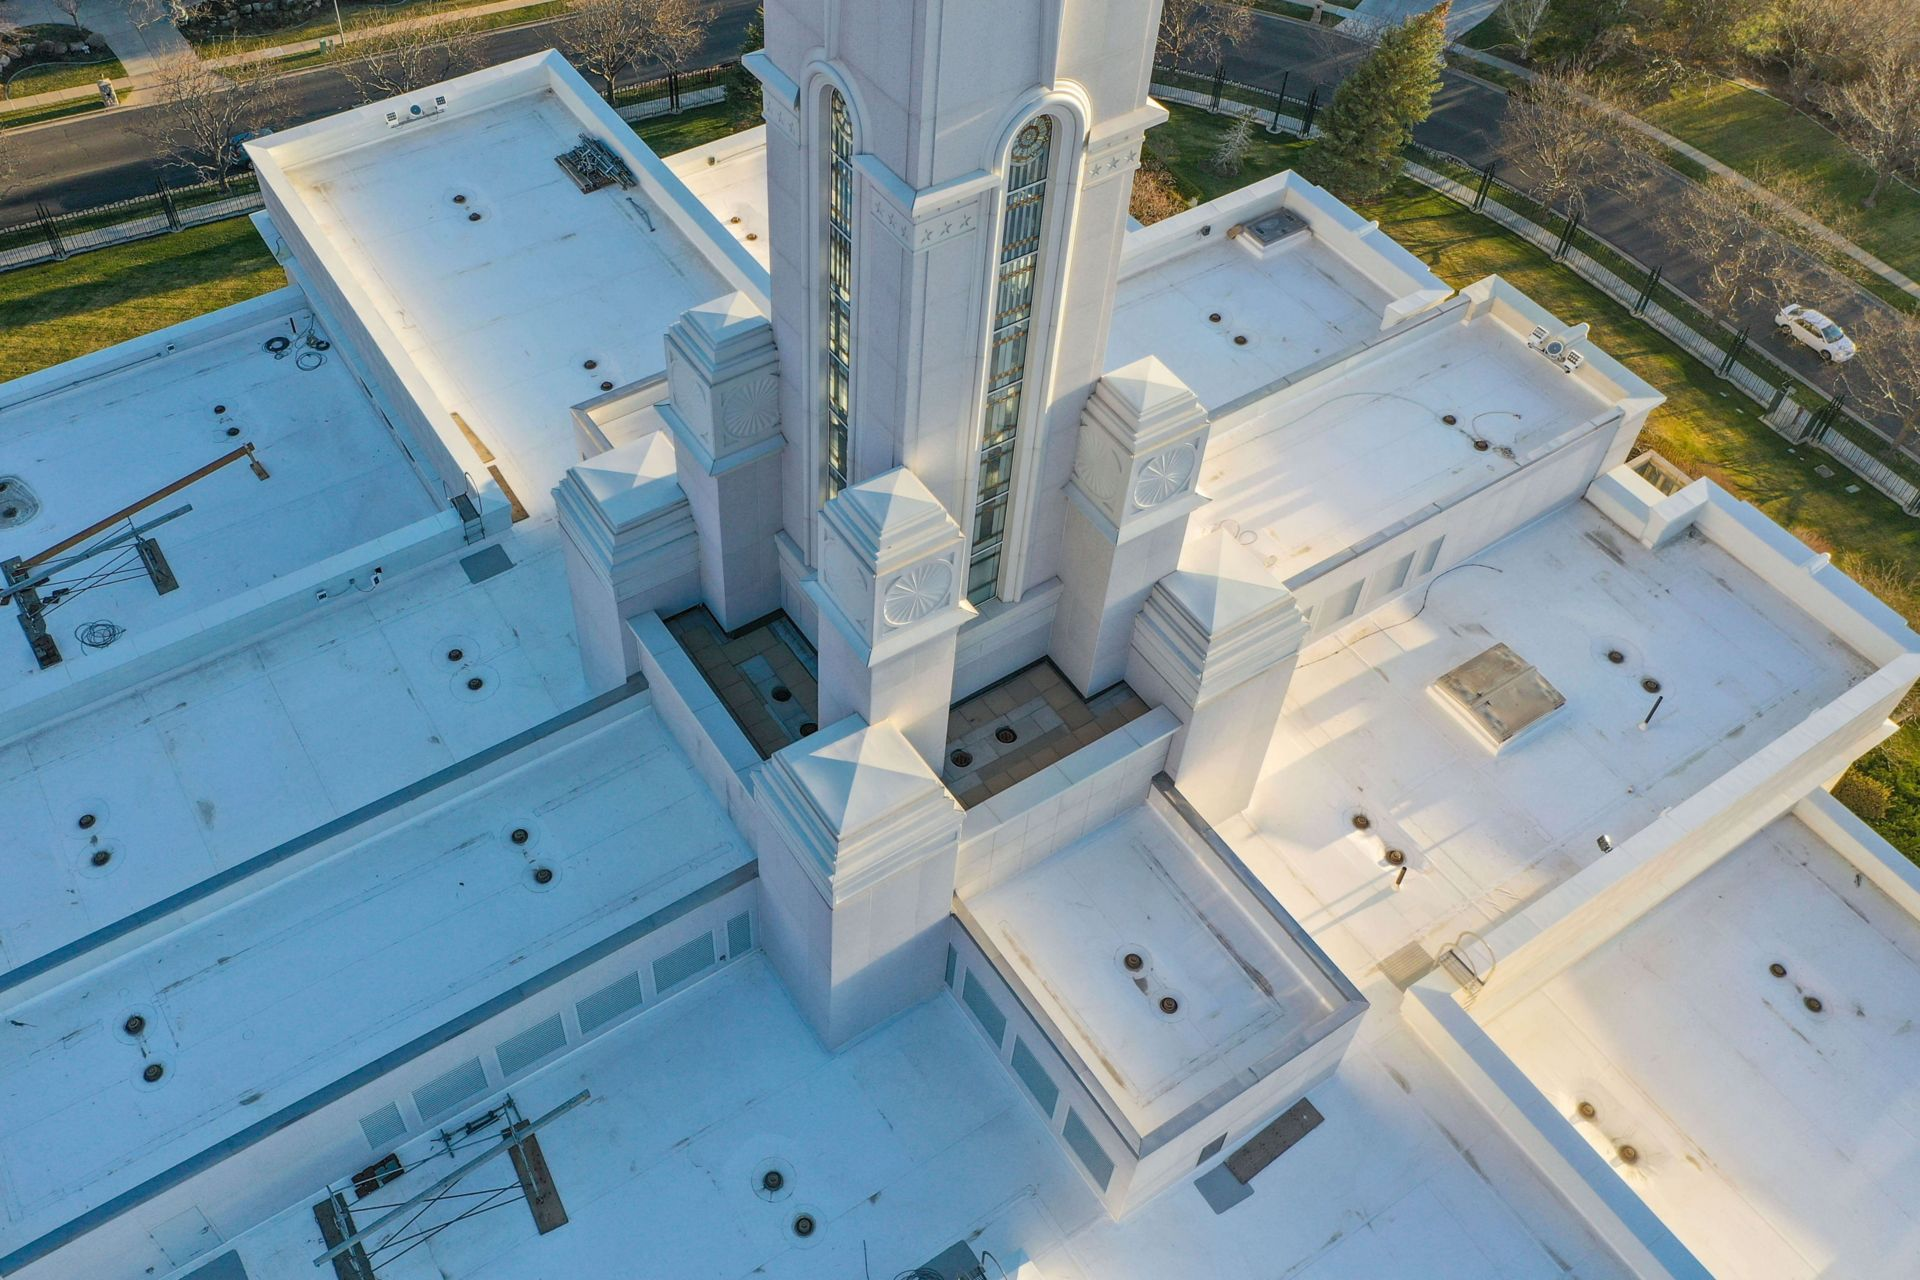 Close up aerial view of the Bountiful Temple with a spire in the center and white roofing membrane on the roof